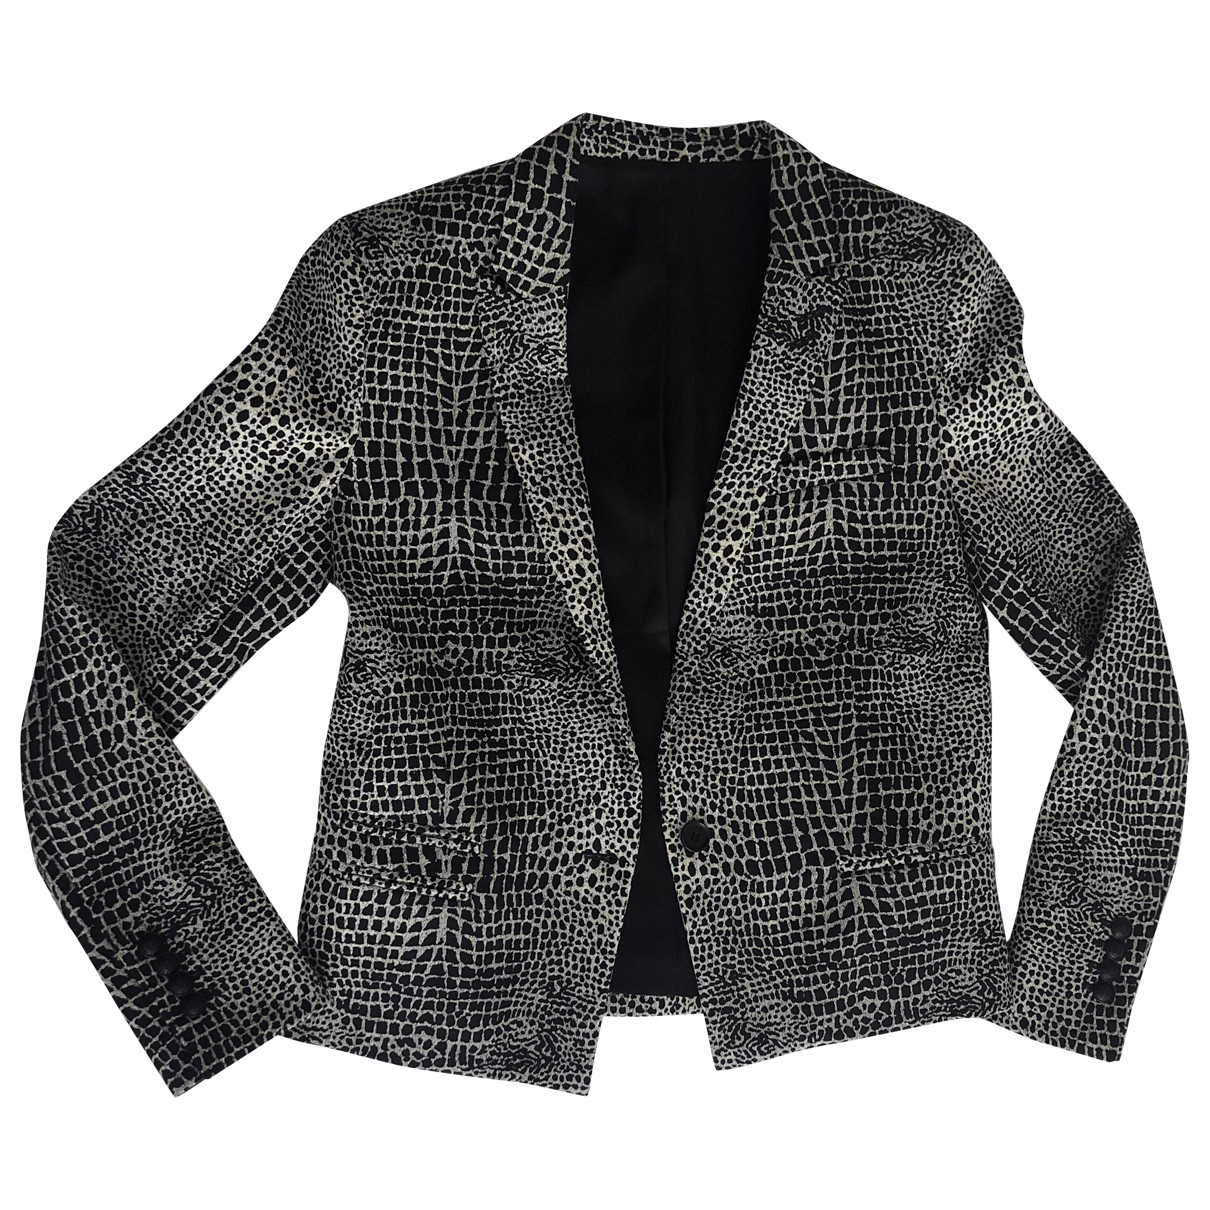 The Kooples \N Black Cotton jacket for Women 38 FR